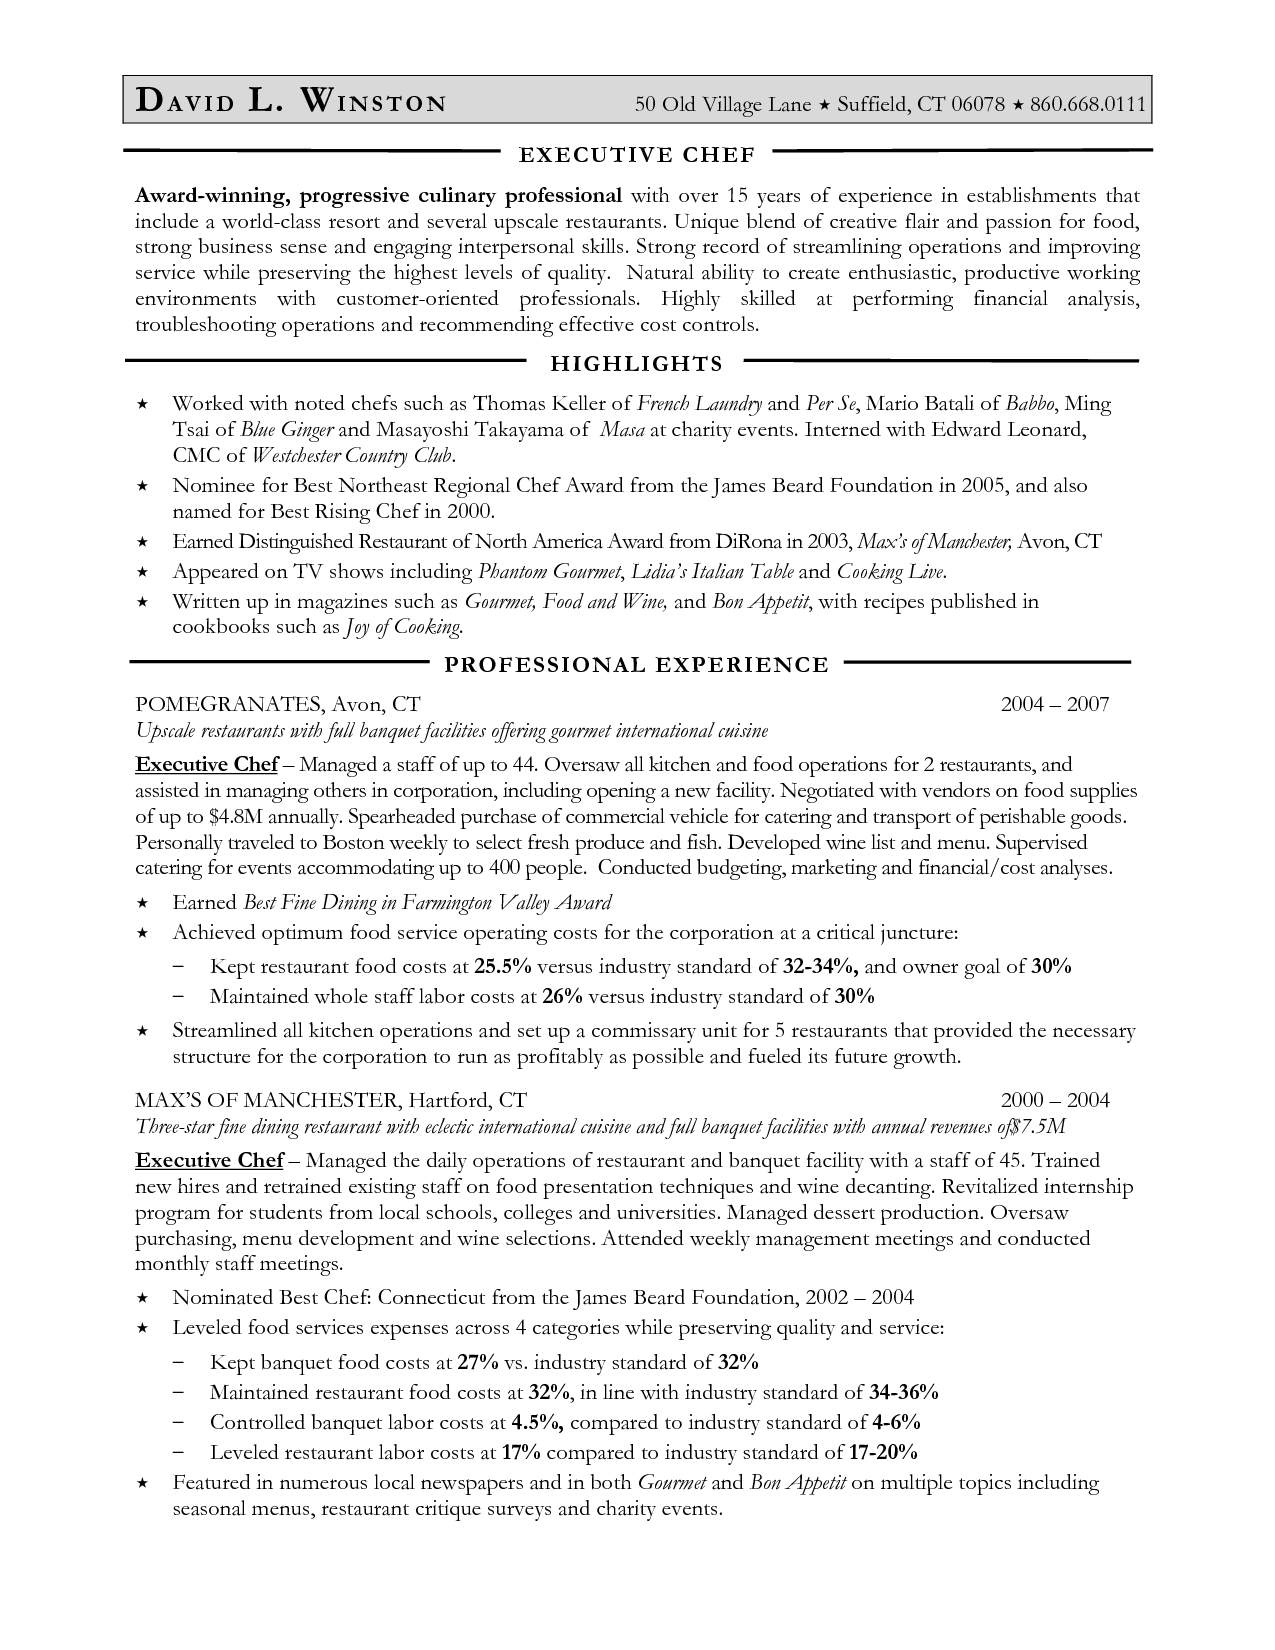 Pastry Chef Resume Samples  HttpWwwJobresumeWebsitePastry